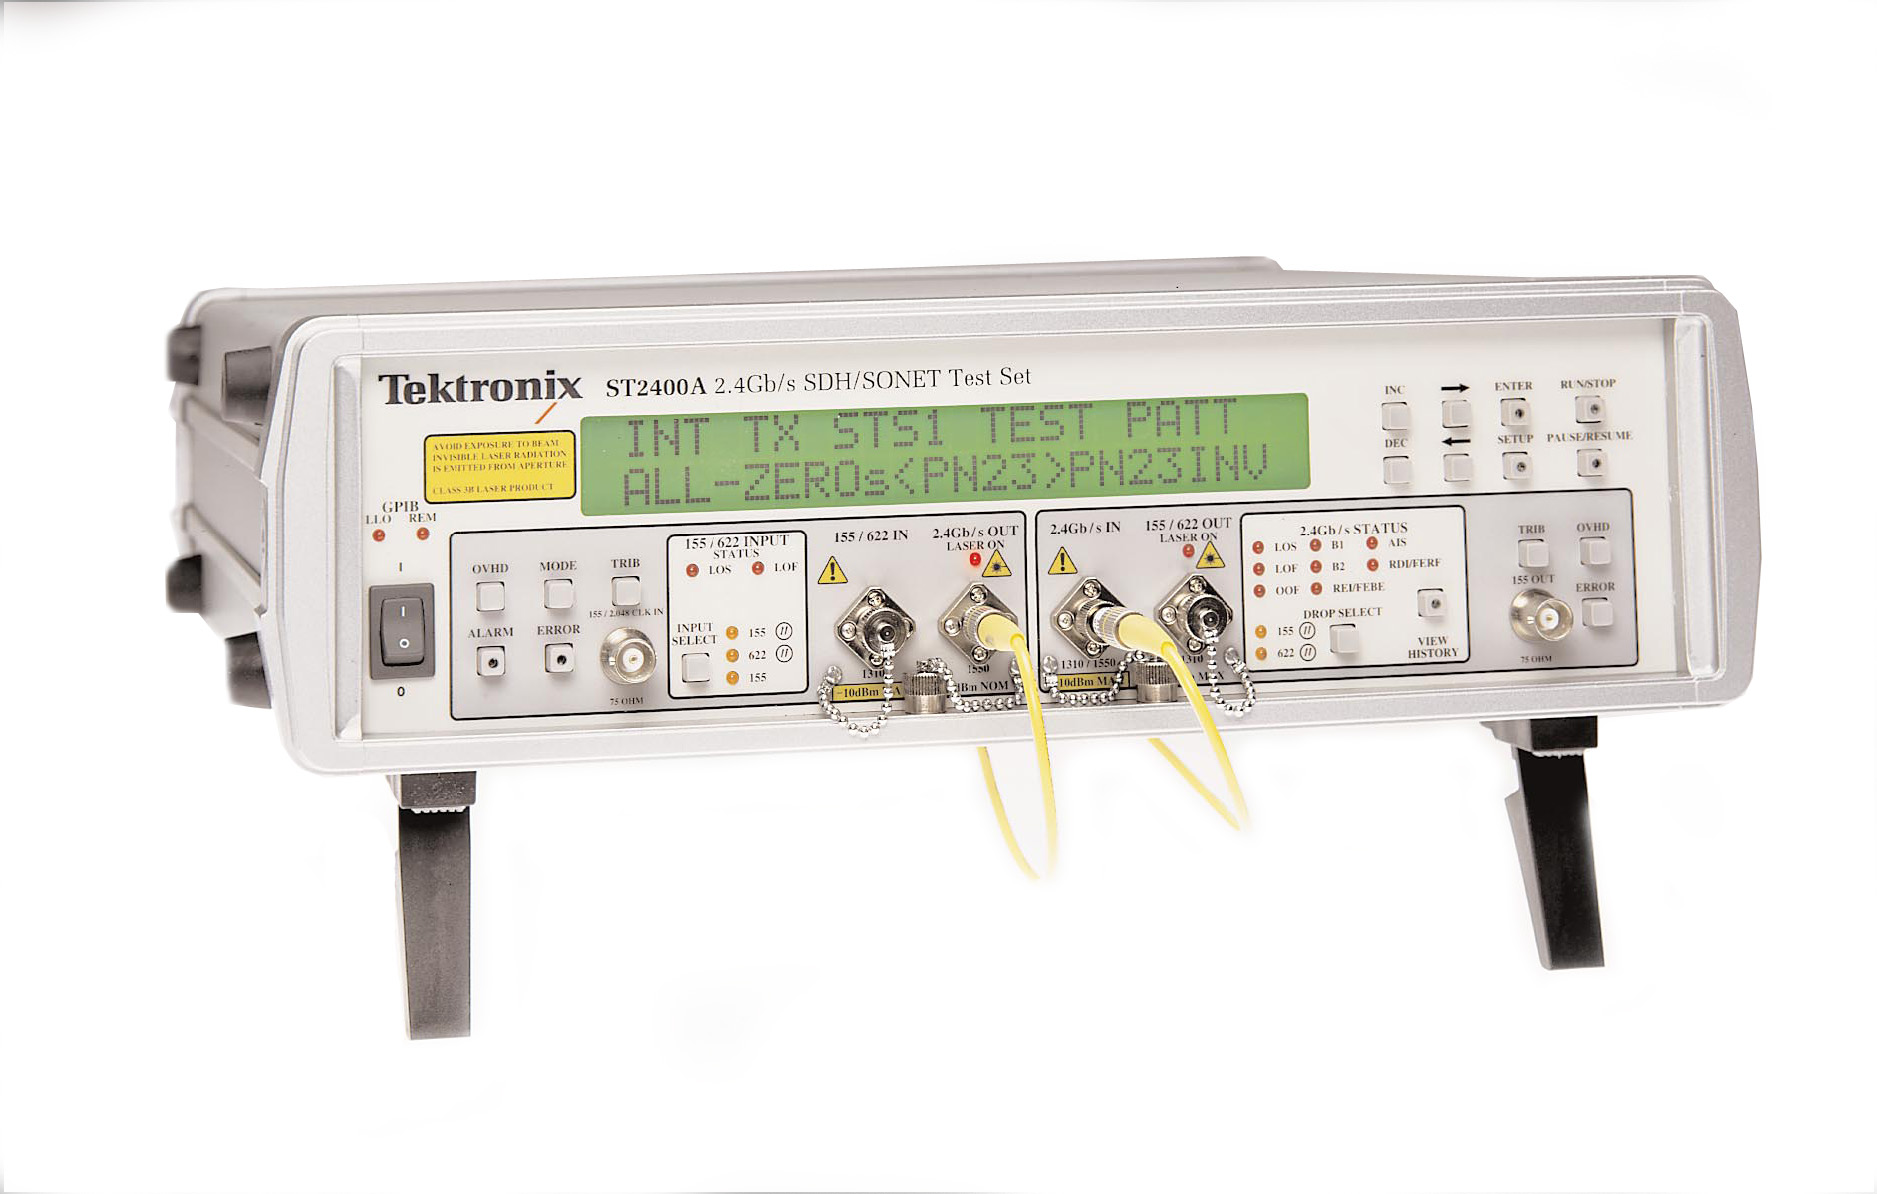 Tektronix ST2400A for sale